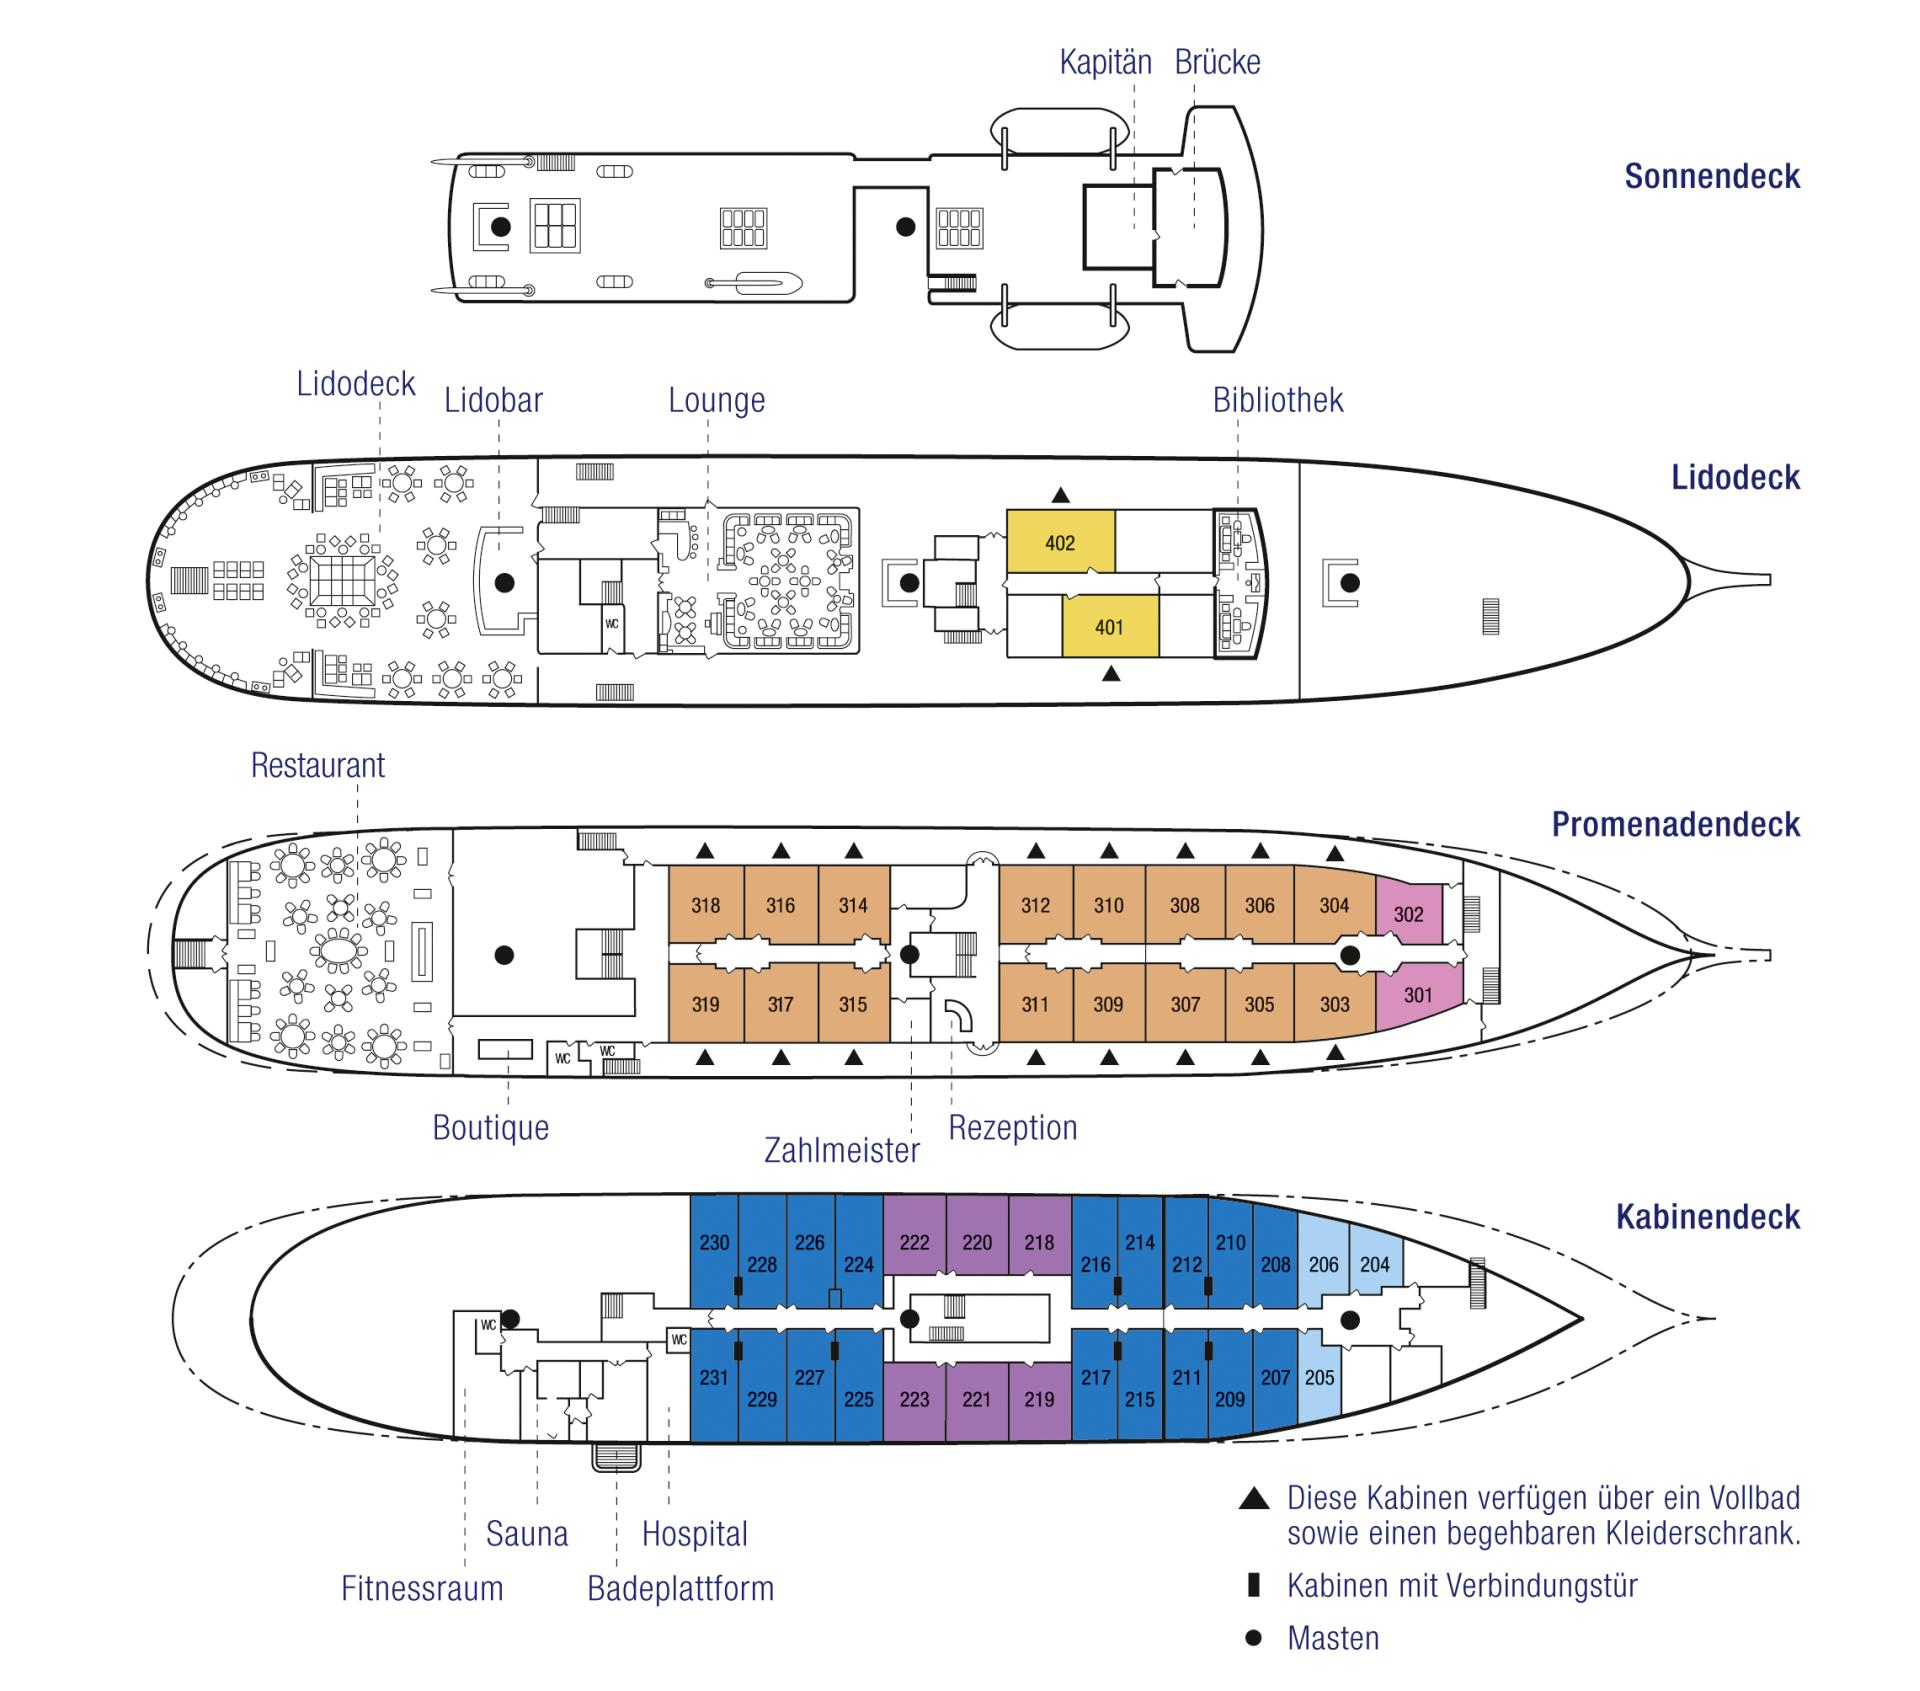 Deckplan Sea Cloud 2